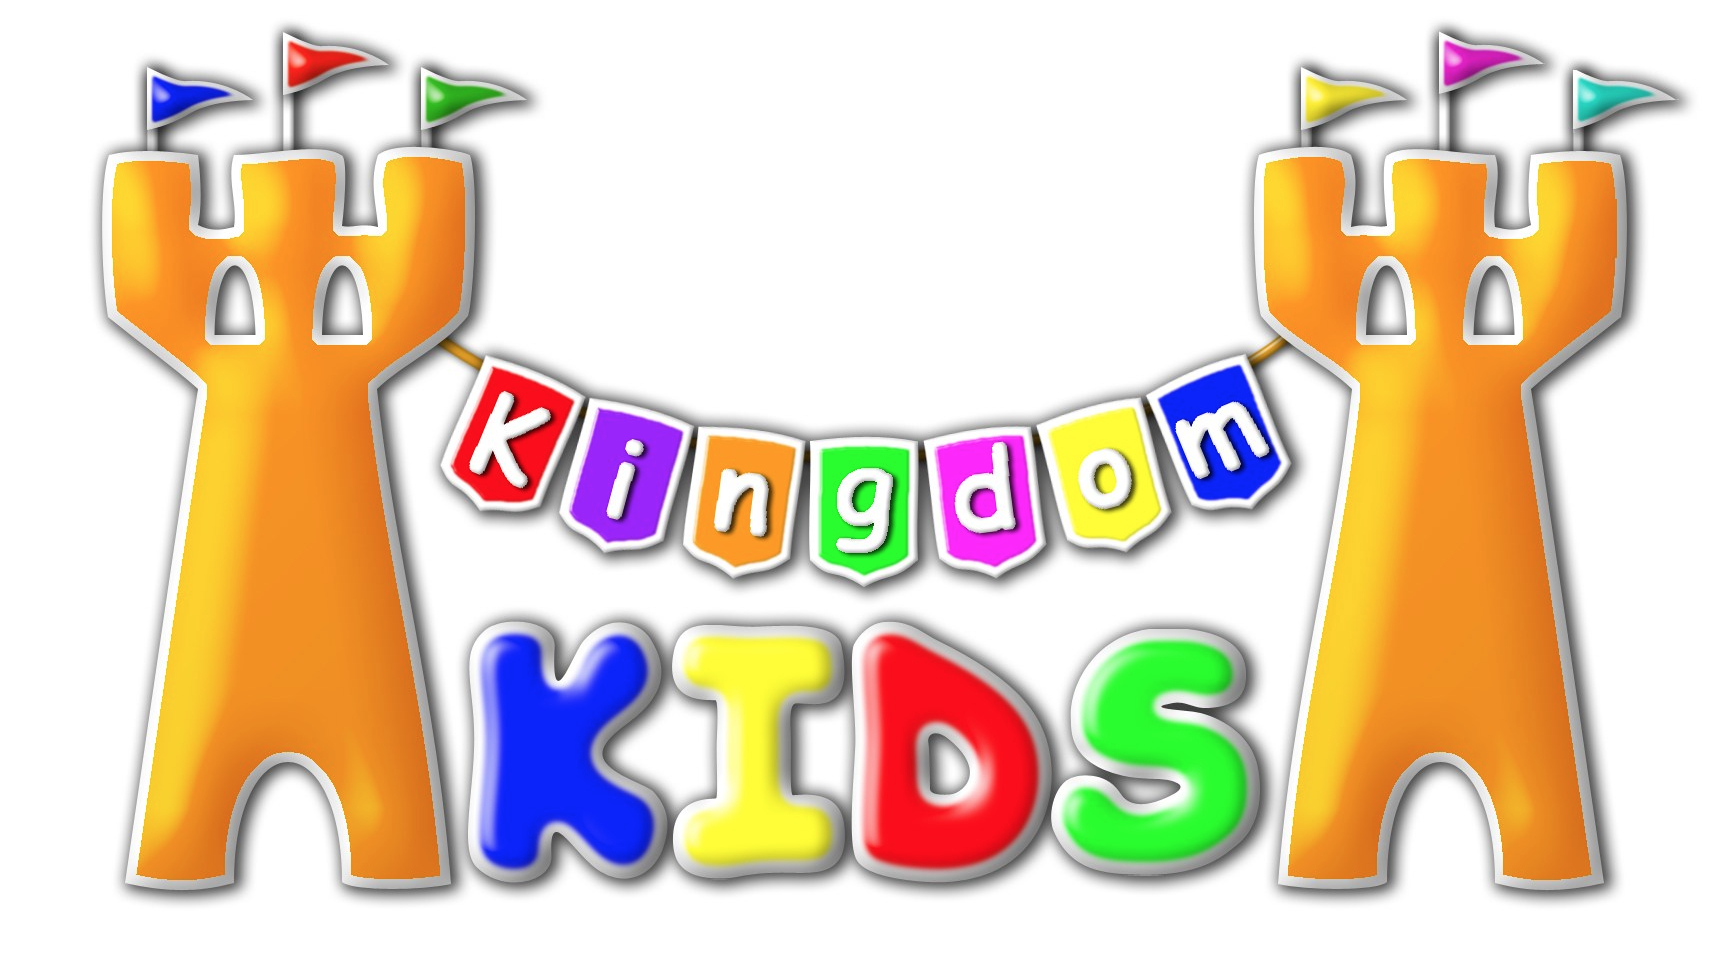 kingdom-kids-01.jpg